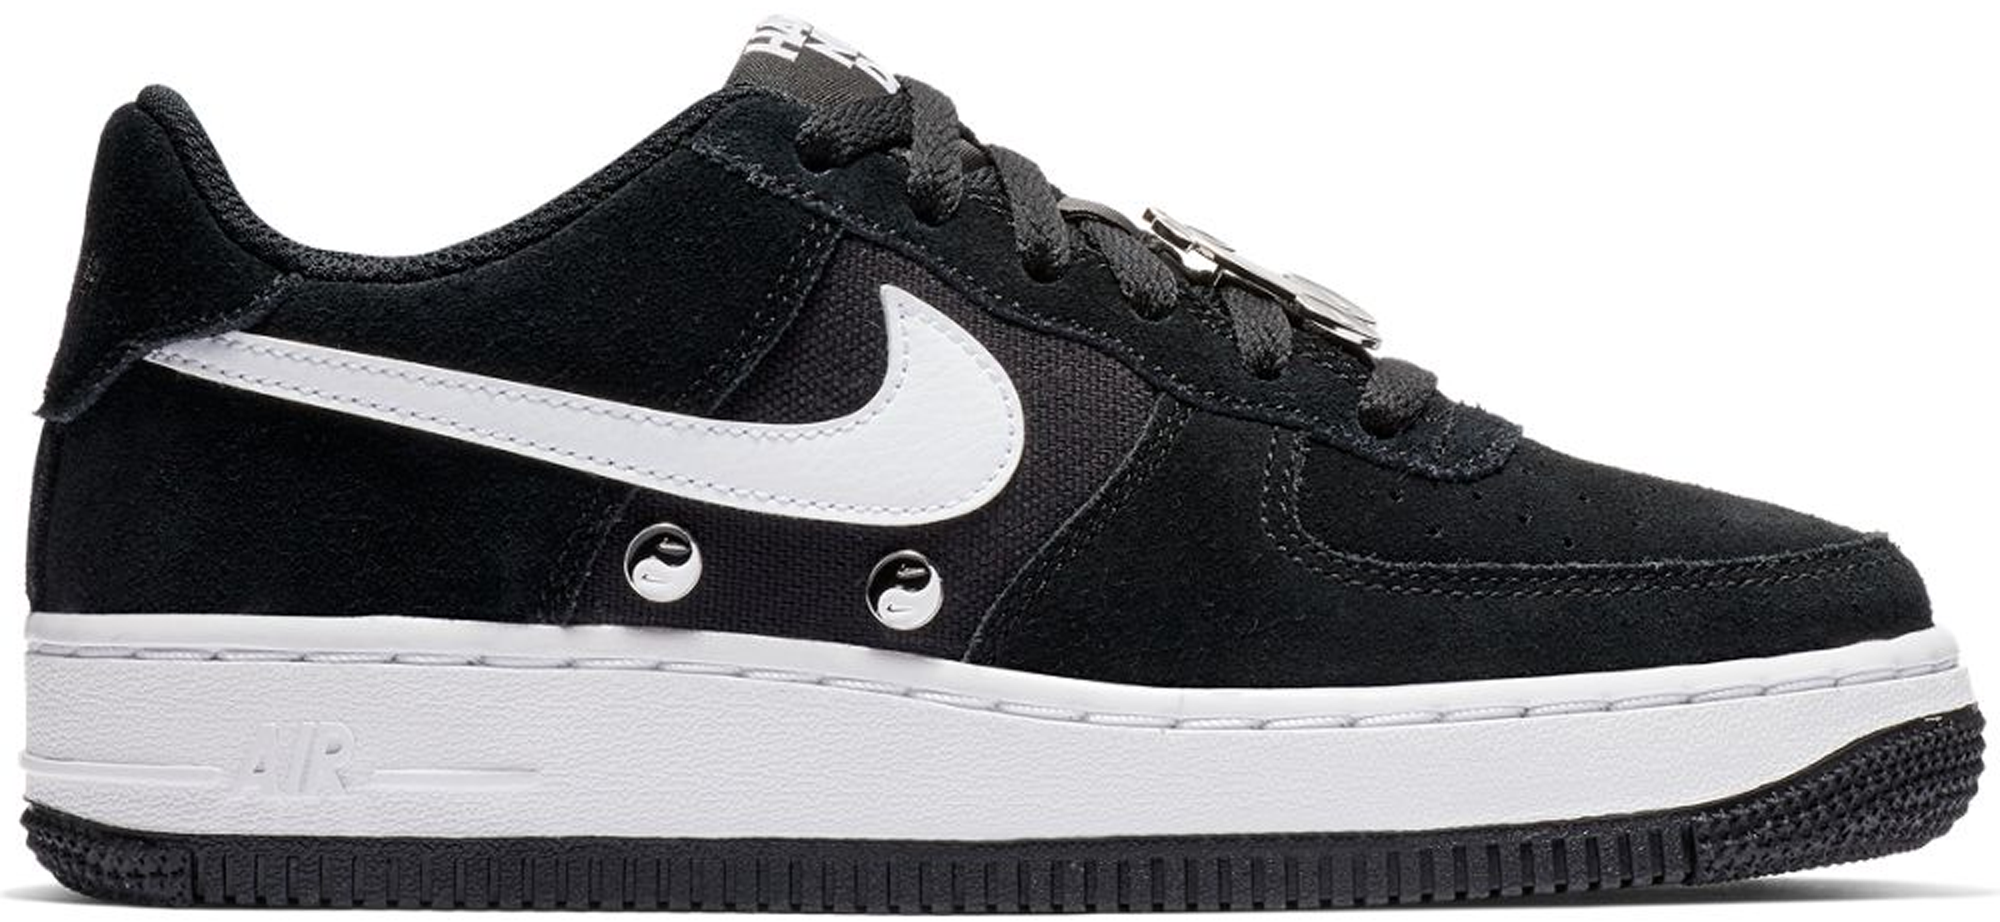 Air Force 1 Low Have a Nike Day Black (GS)